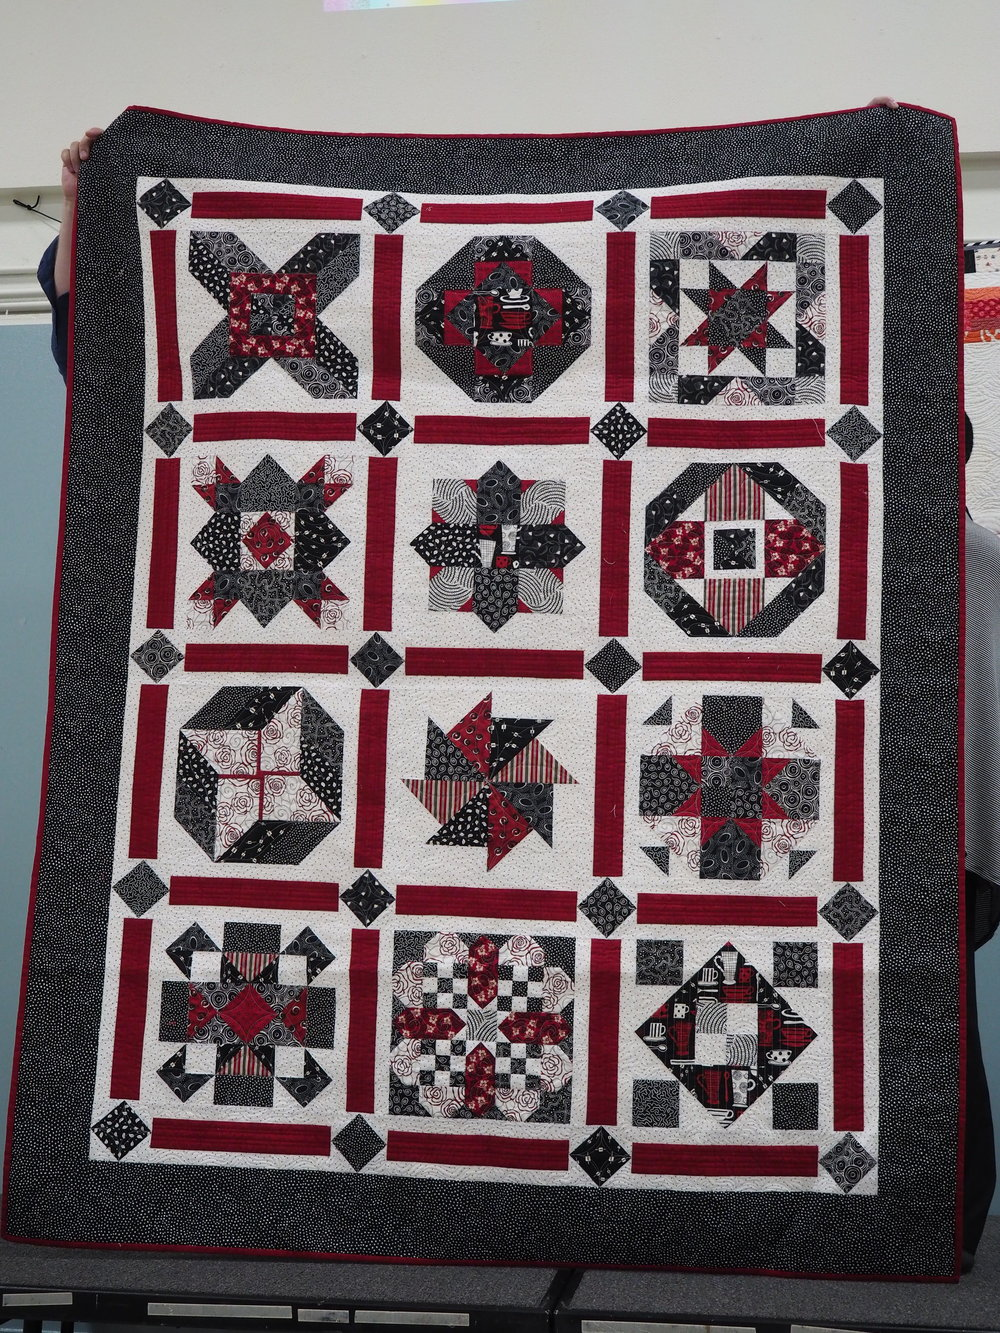 The House Quilt by Susan Dottarar